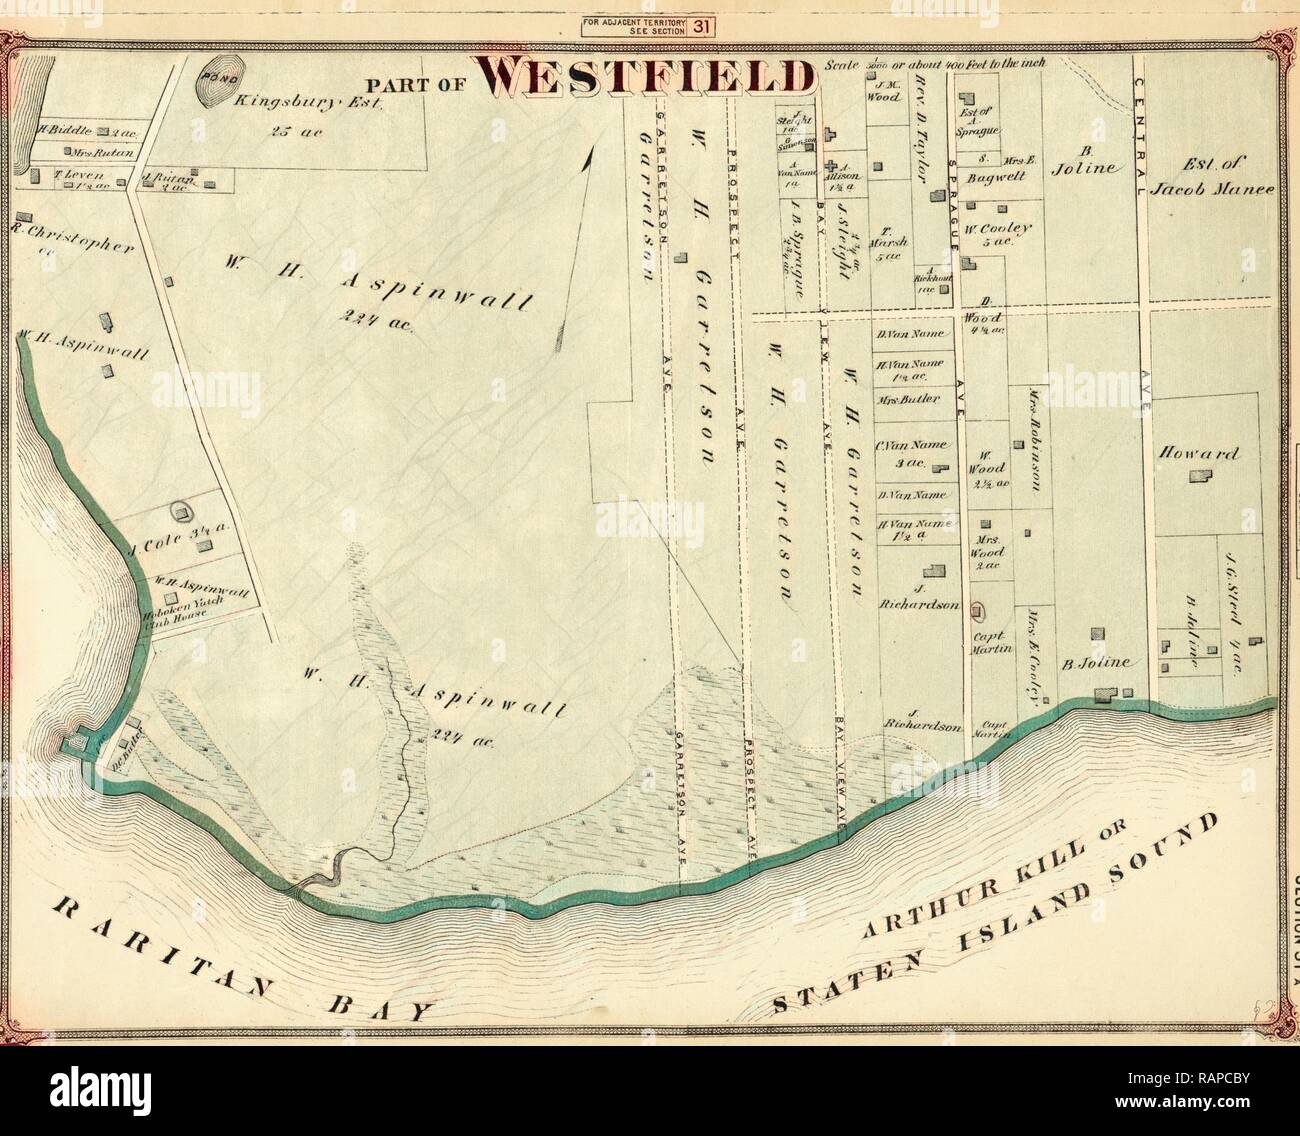 Part of Westfield, New York, USA. Reimagined by Gibon. Classic art with a modern twist reimagined - Stock Image